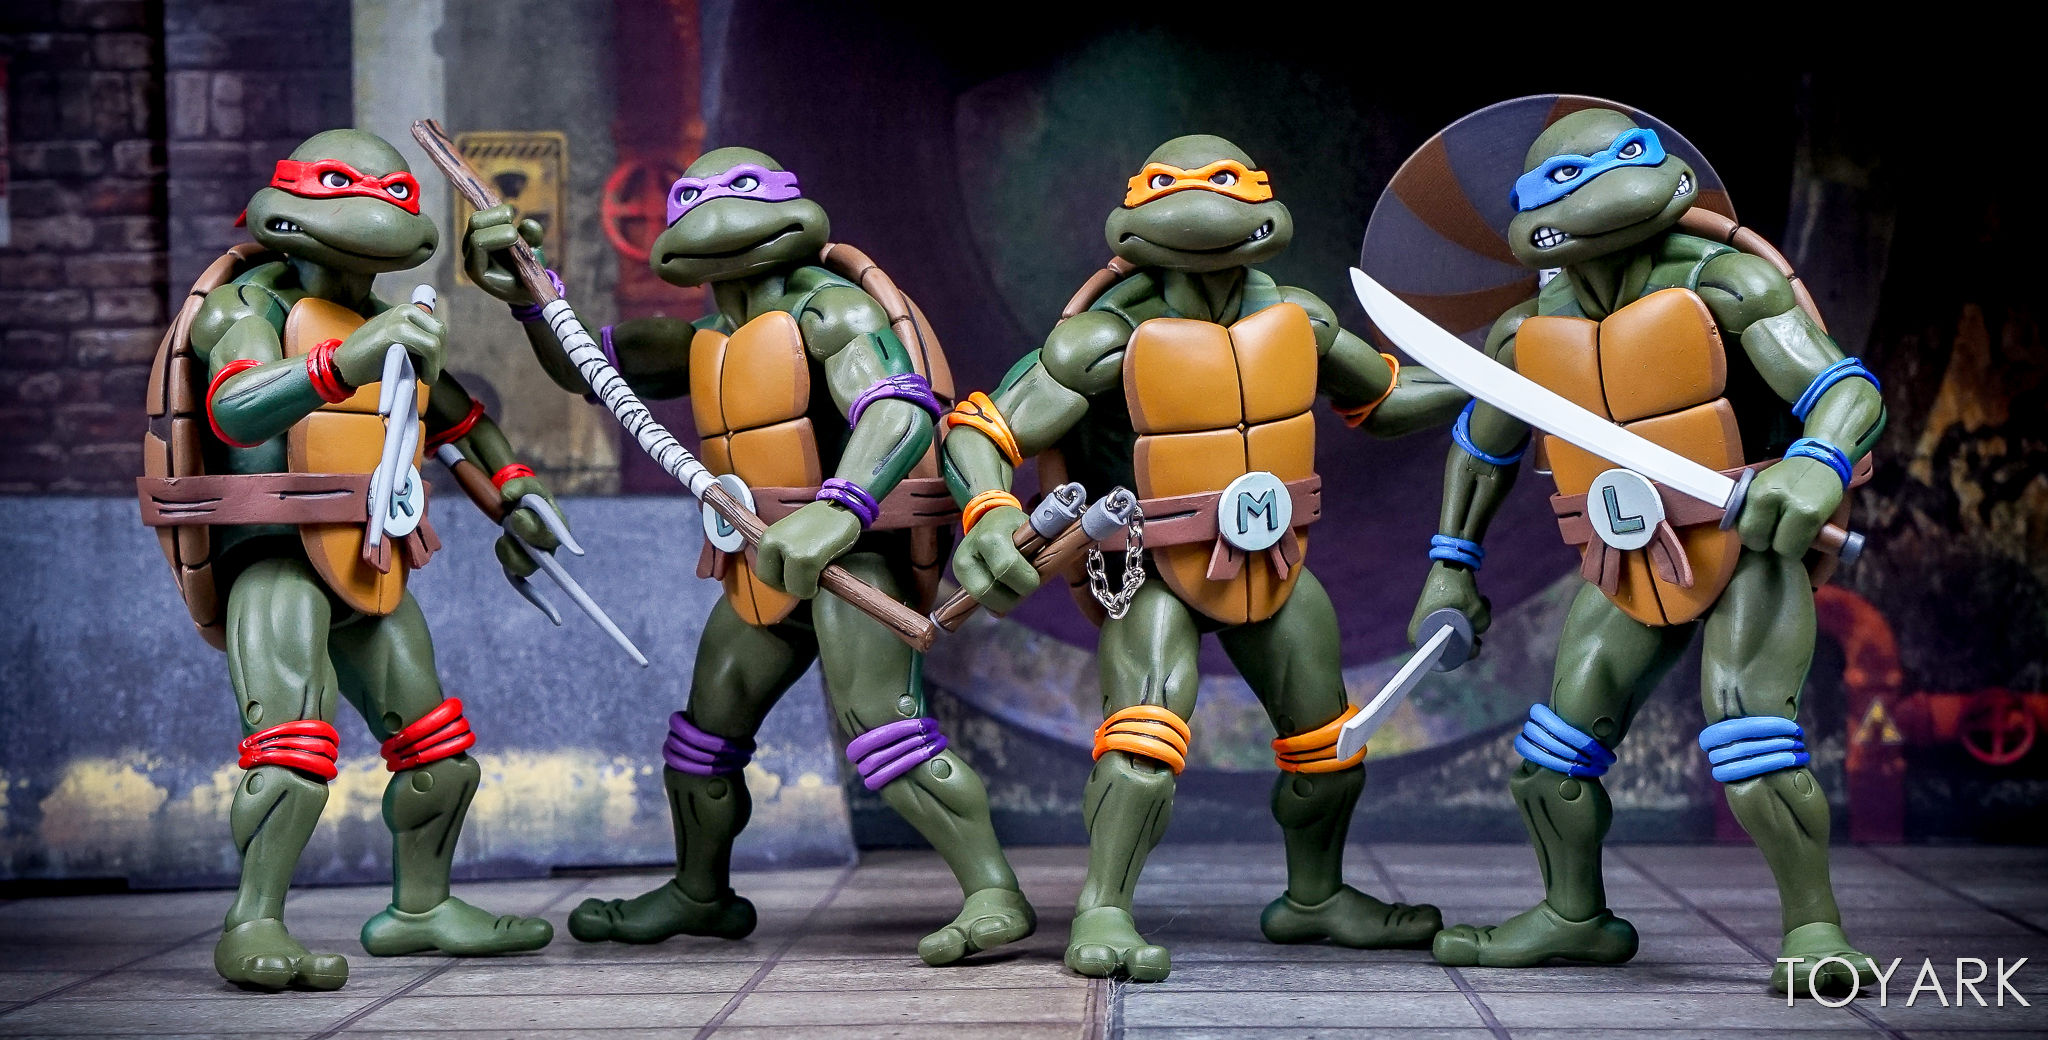 http://news.toyark.com/wp-content/uploads/sites/4/2017/07/NECA-SDCC-2017-Toon-TMNT-043.jpg